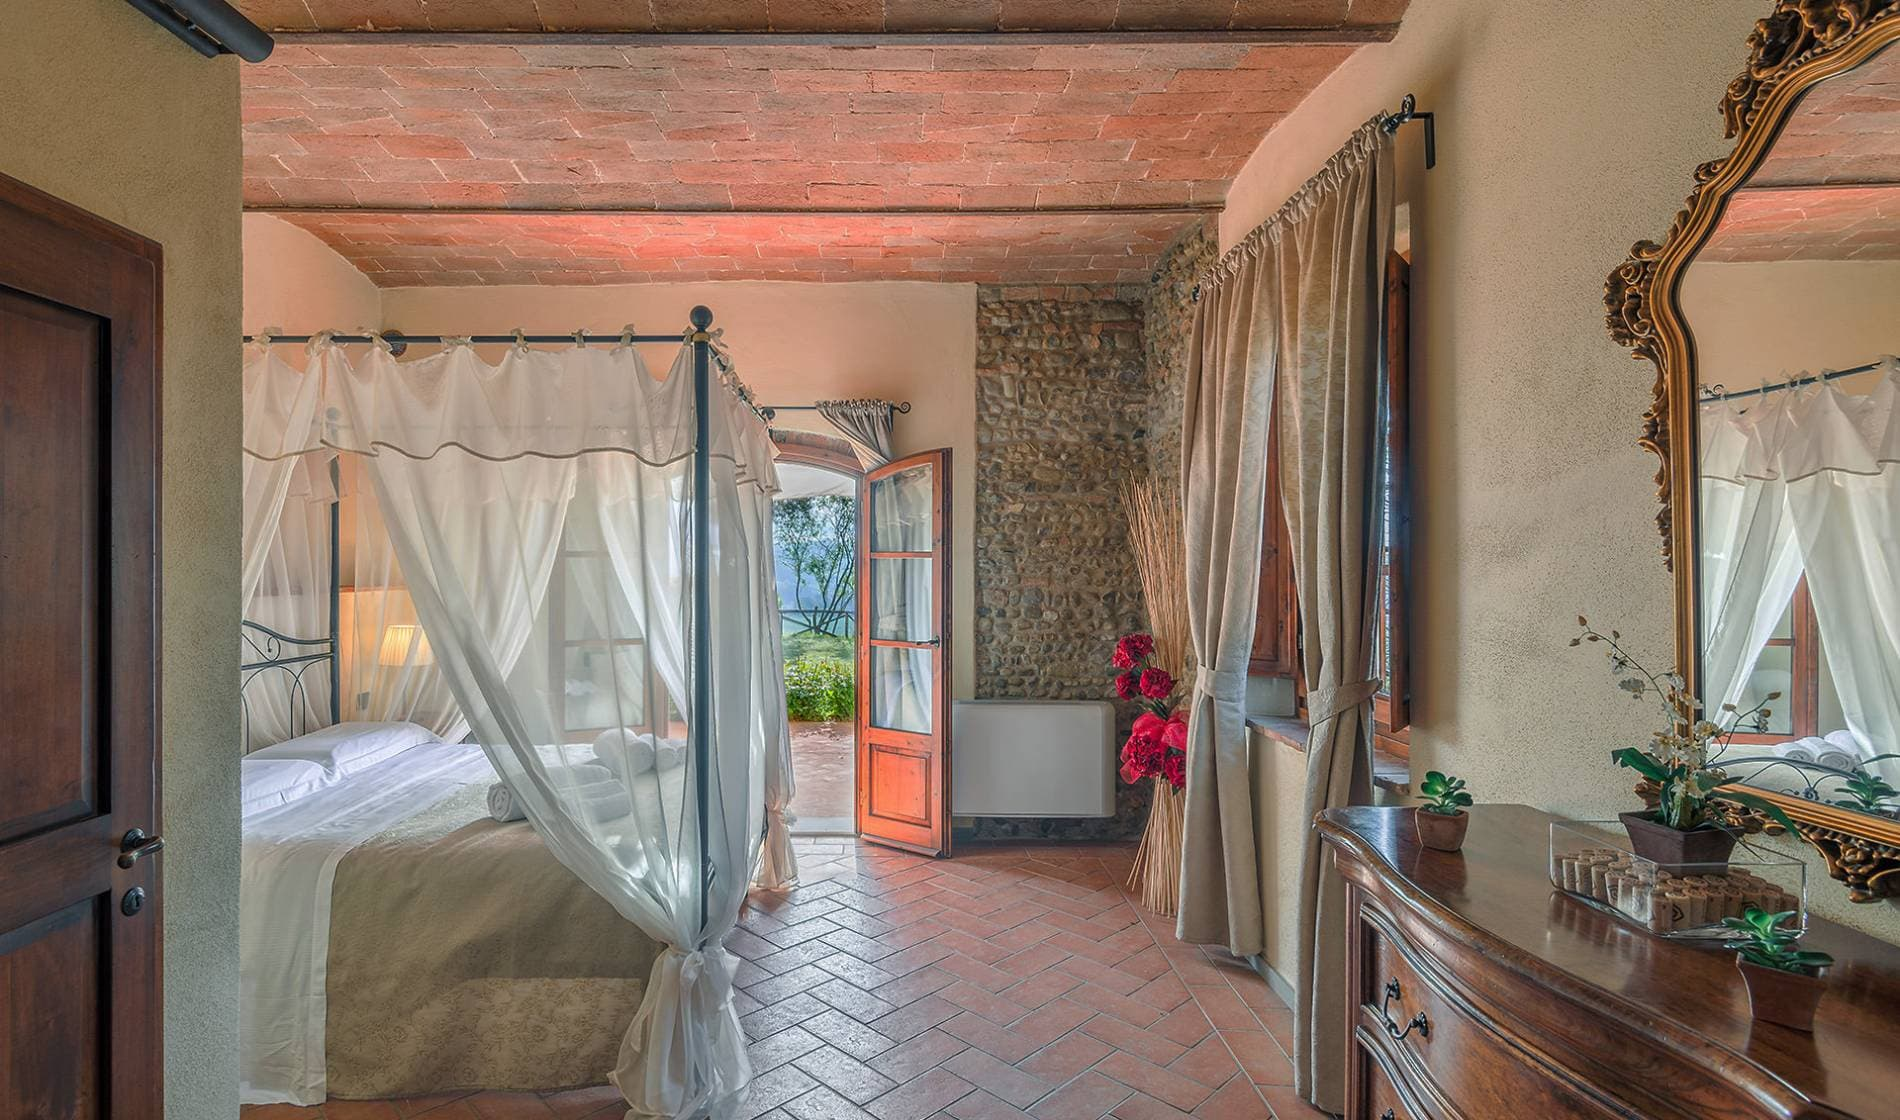 Divine dreams await you on our Tuscan holiday farm